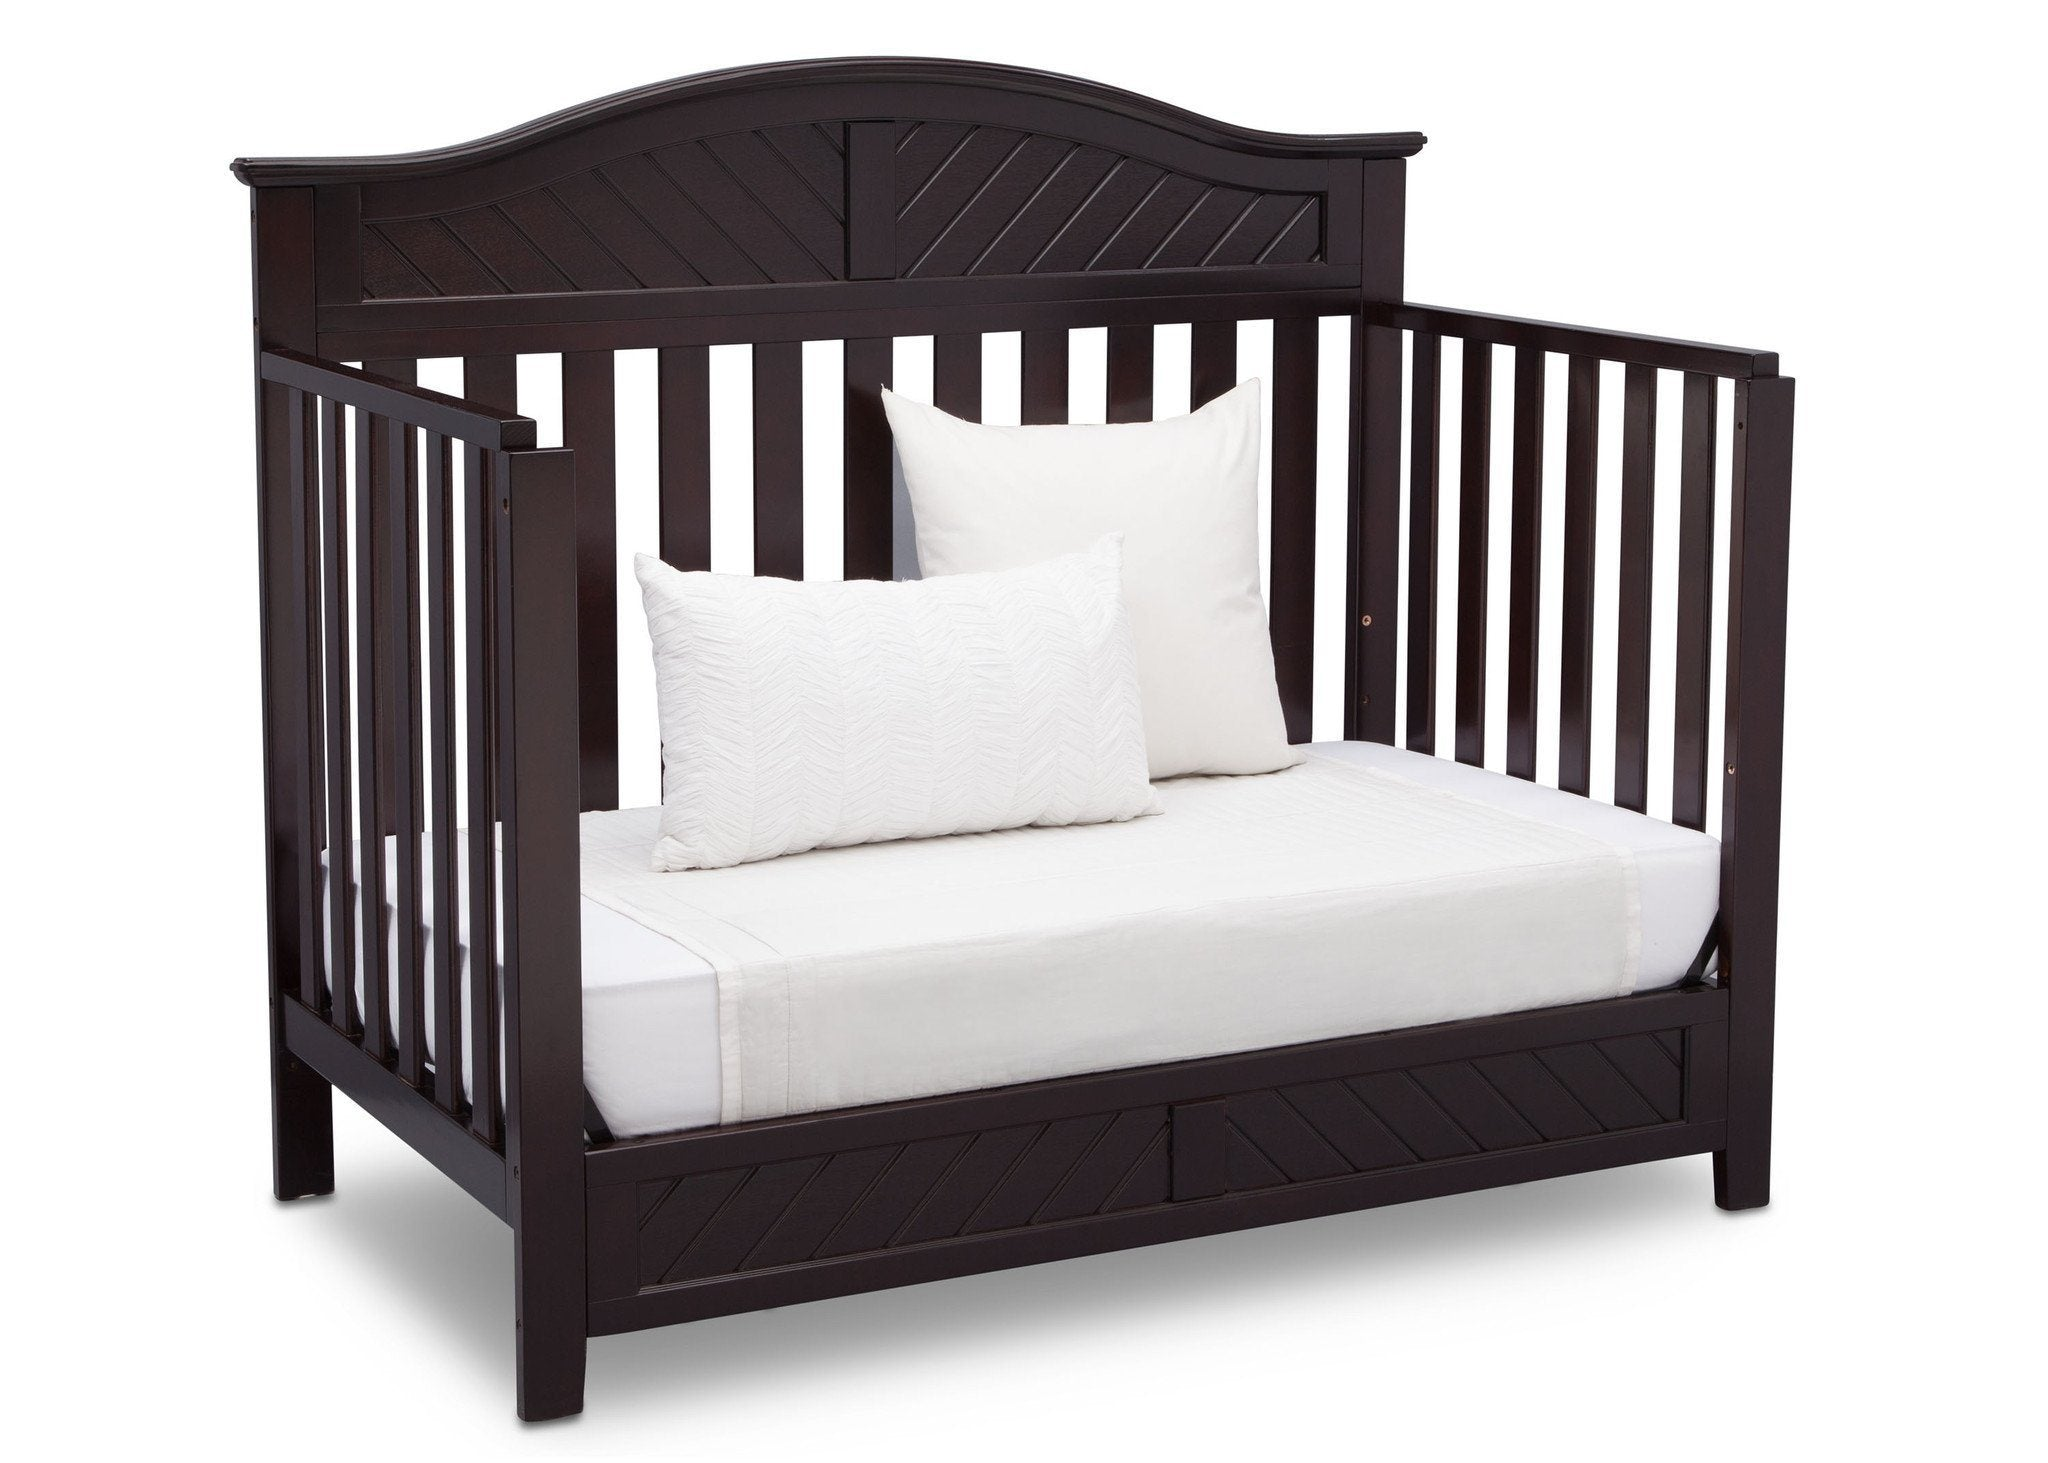 Delta Children Dark Espresso (958) Bennington Elite Curved 4-in-1 Crib angled conversion to daybed b5b